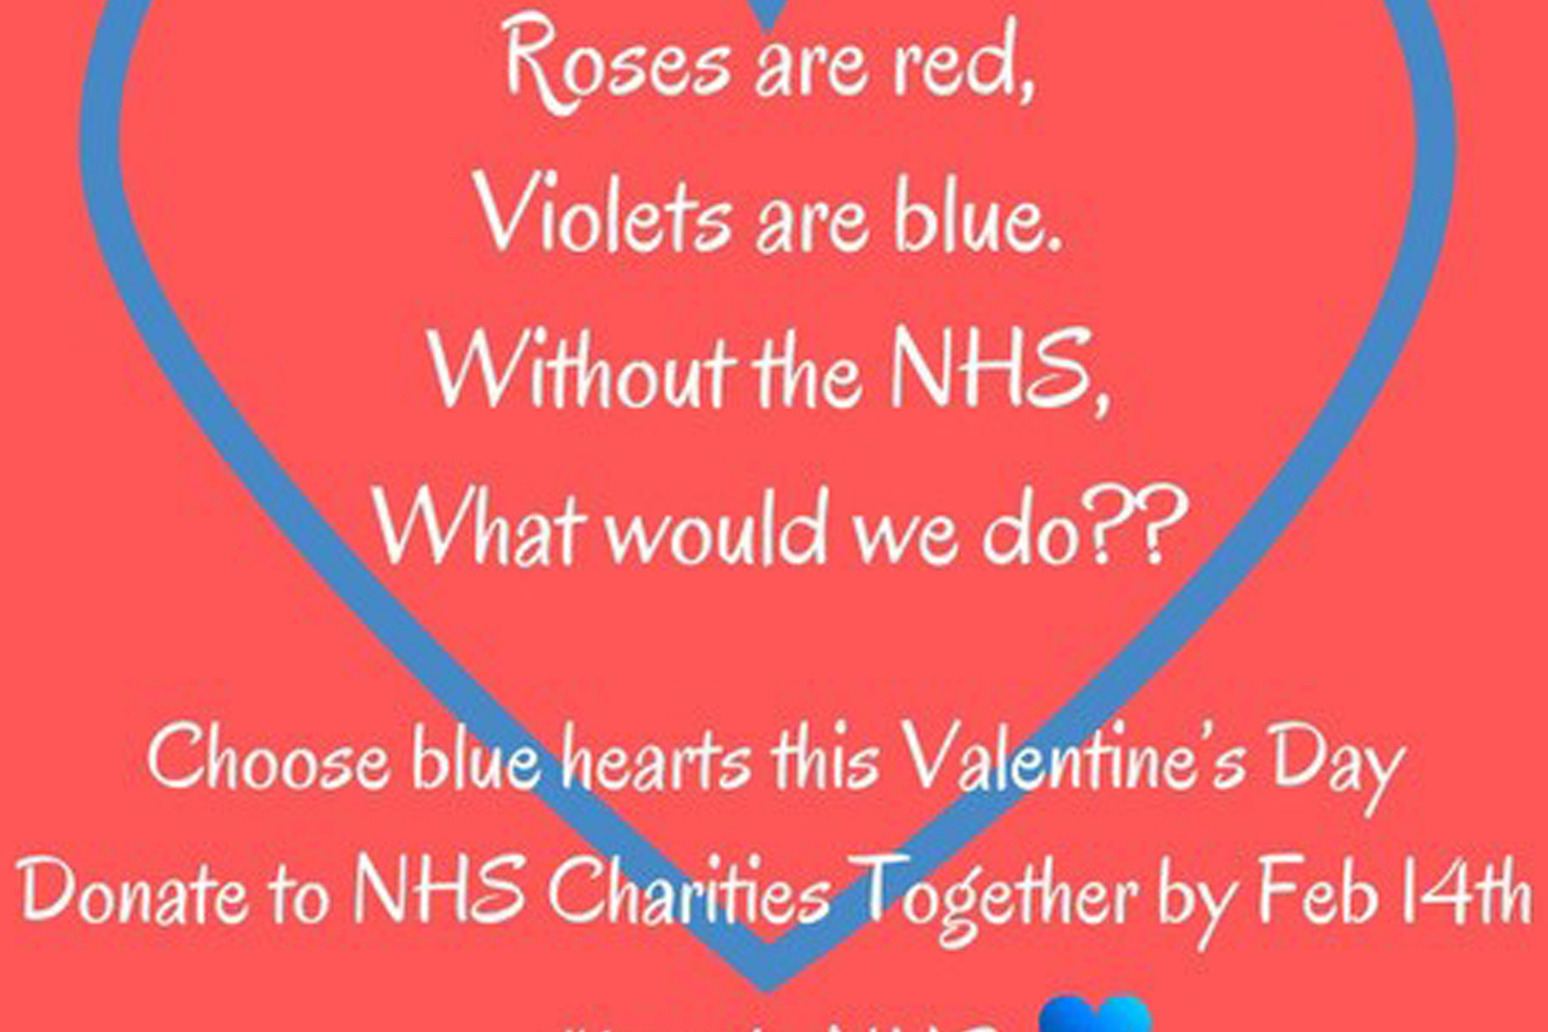 A campaigner is calling for people to swap 'cutesy cards' for NHS donations this Valentine's Day